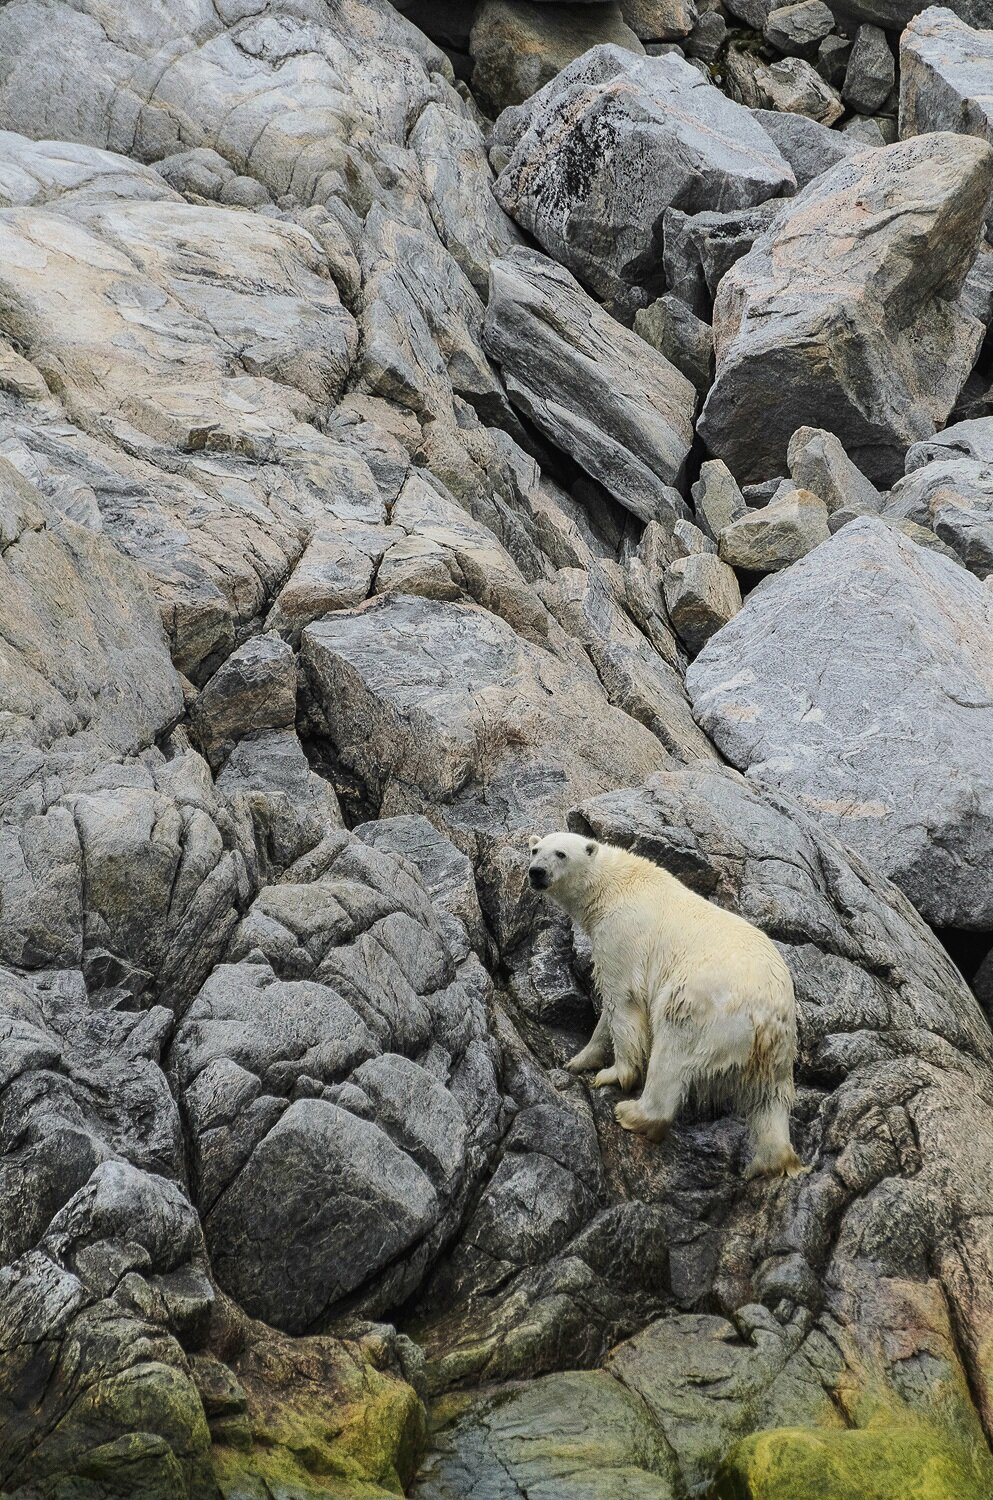 Stranded Polar Bear Emerging From The Sea - Nunavut, Canadian Arctic